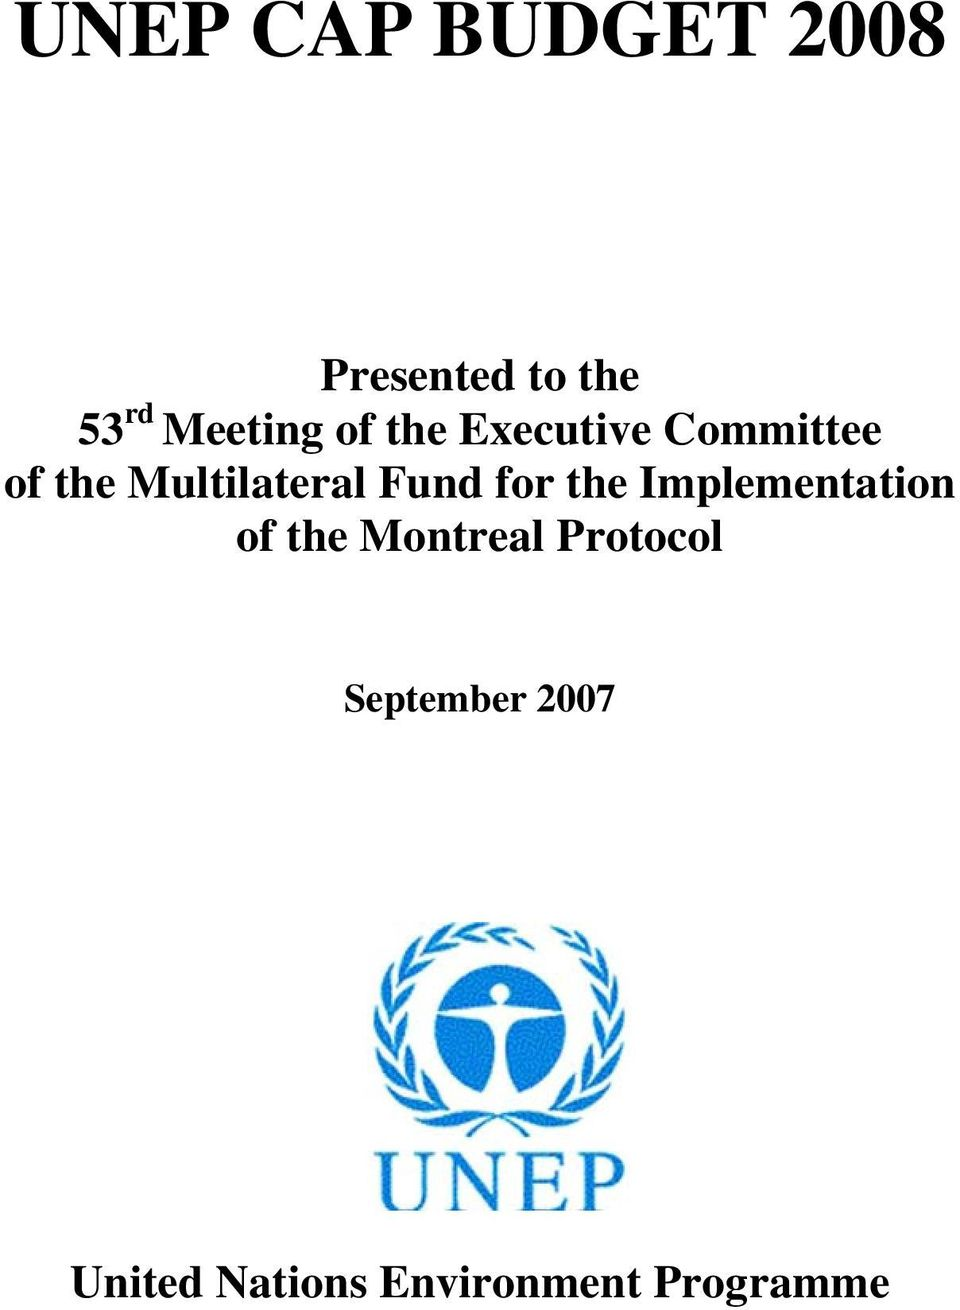 Multilateral Fund for the Implementation of the